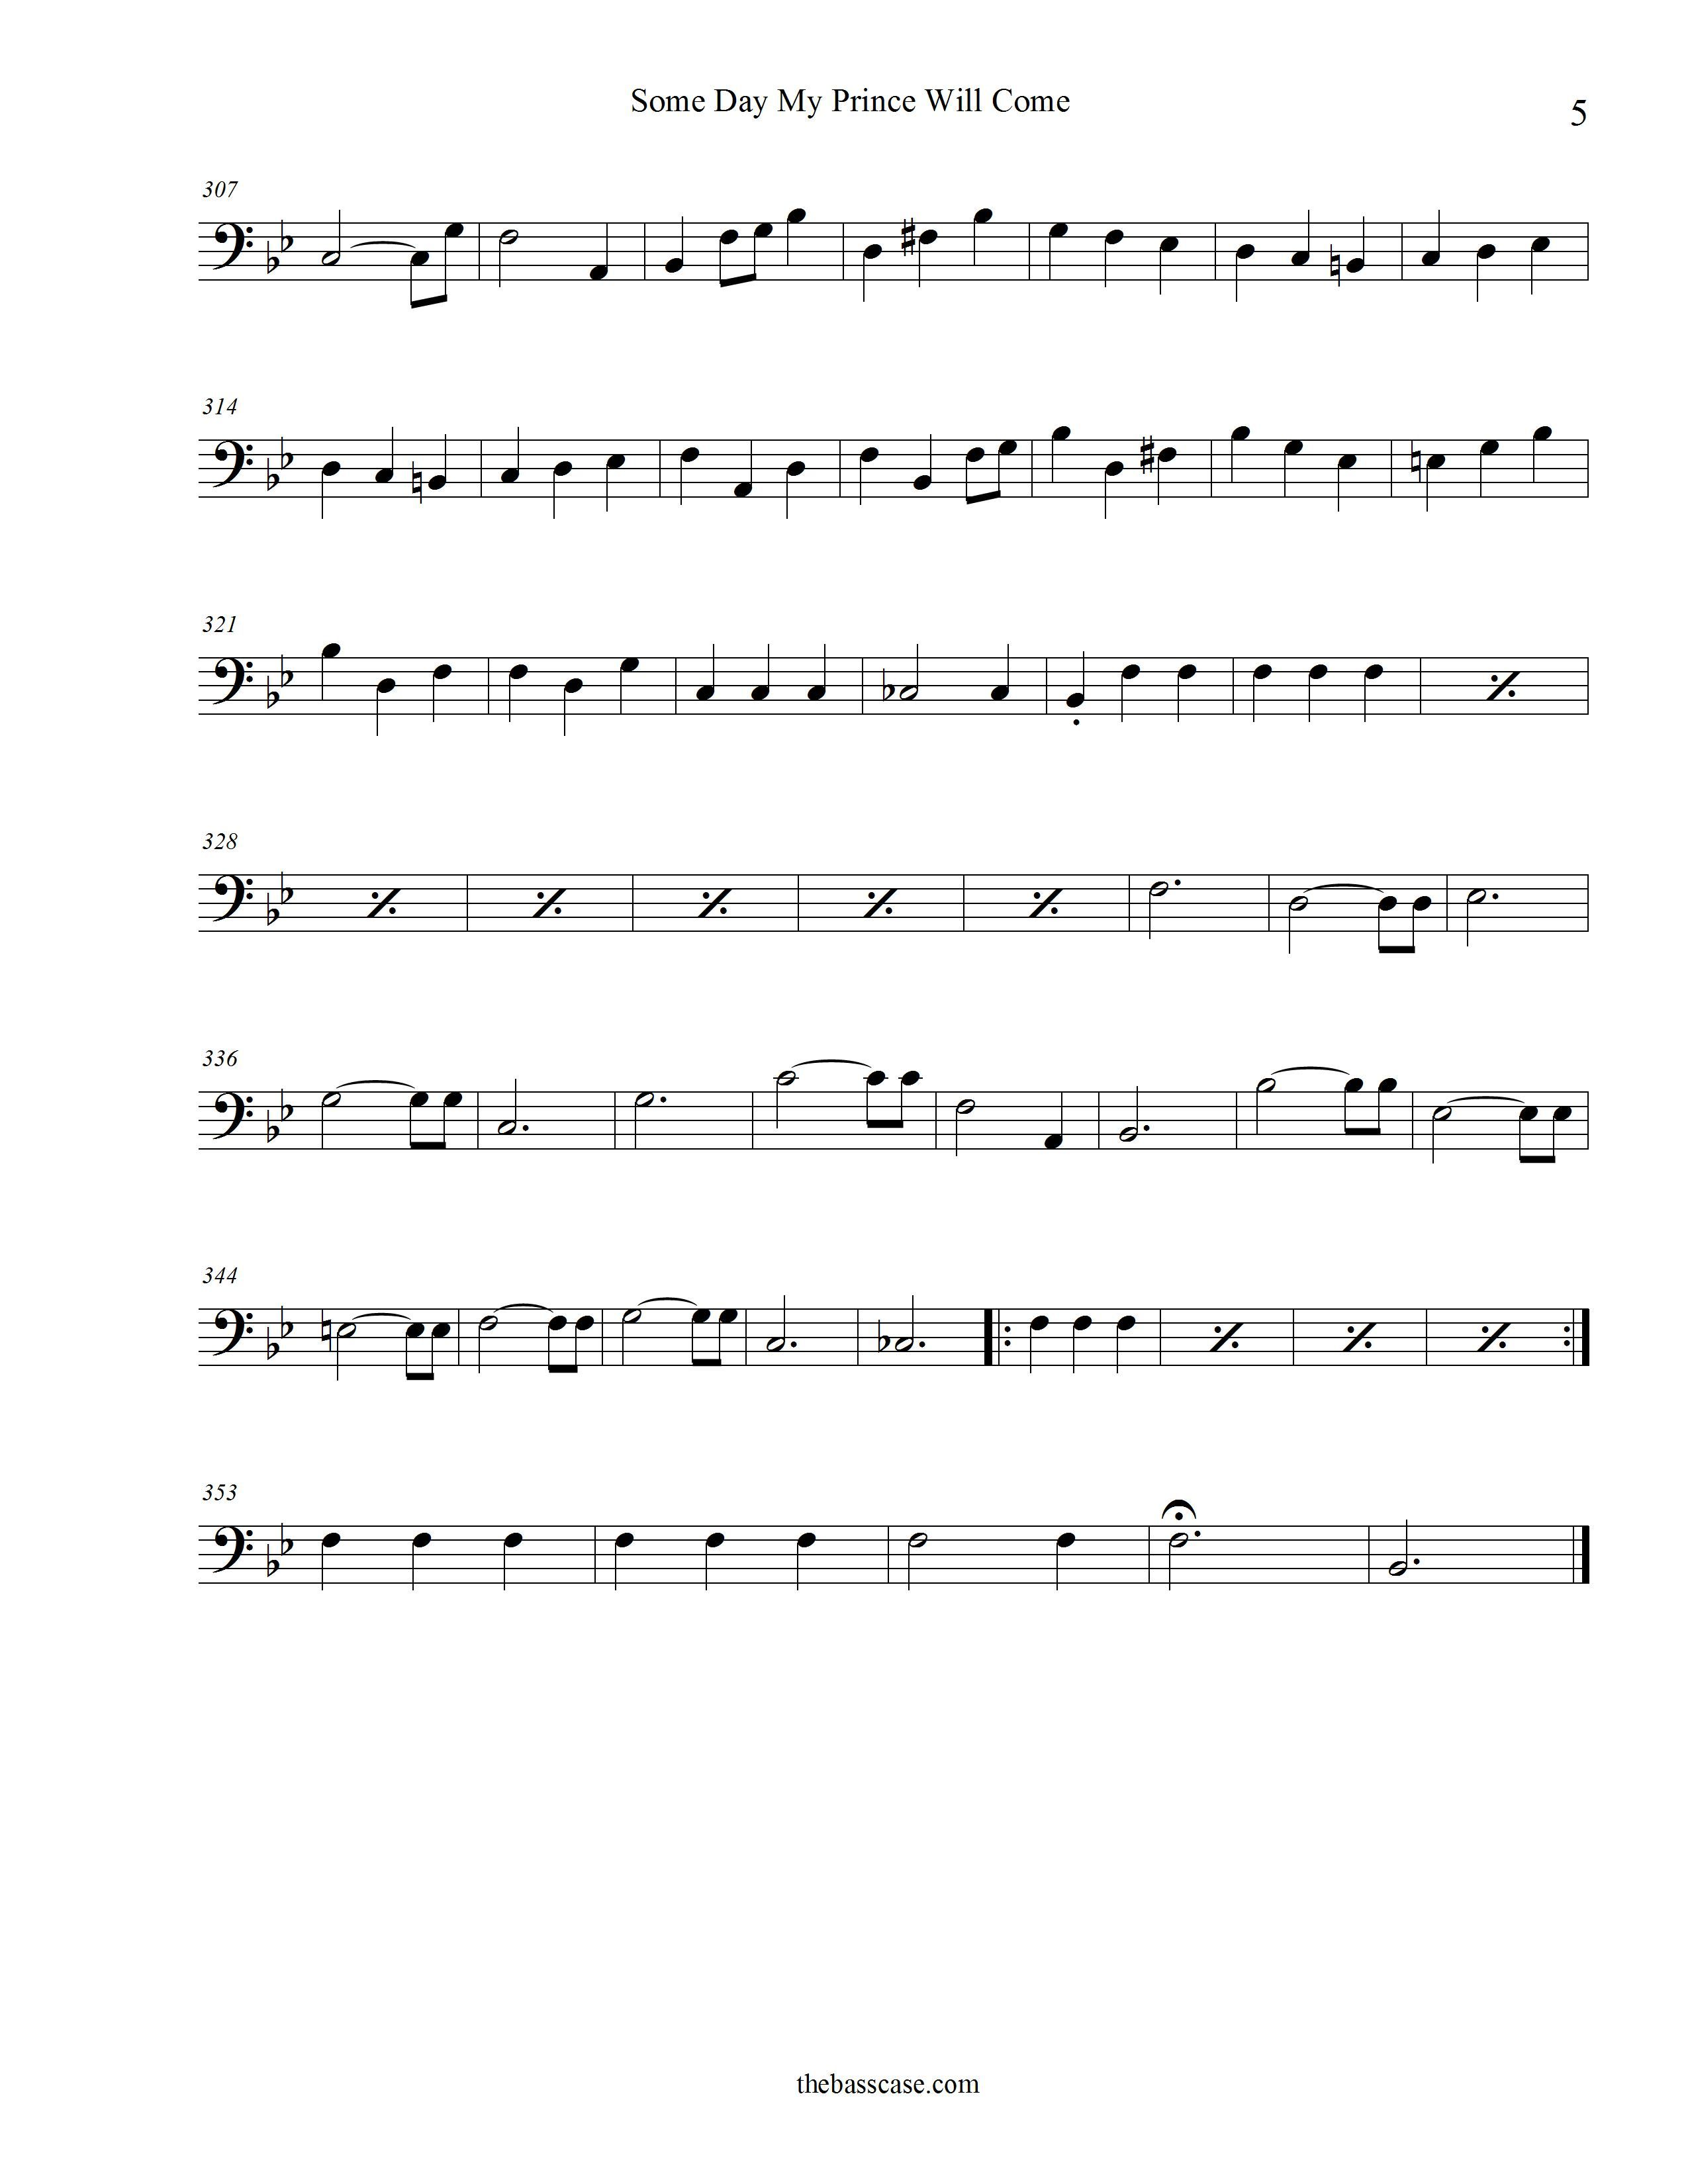 Beginning Bass Clef Songs